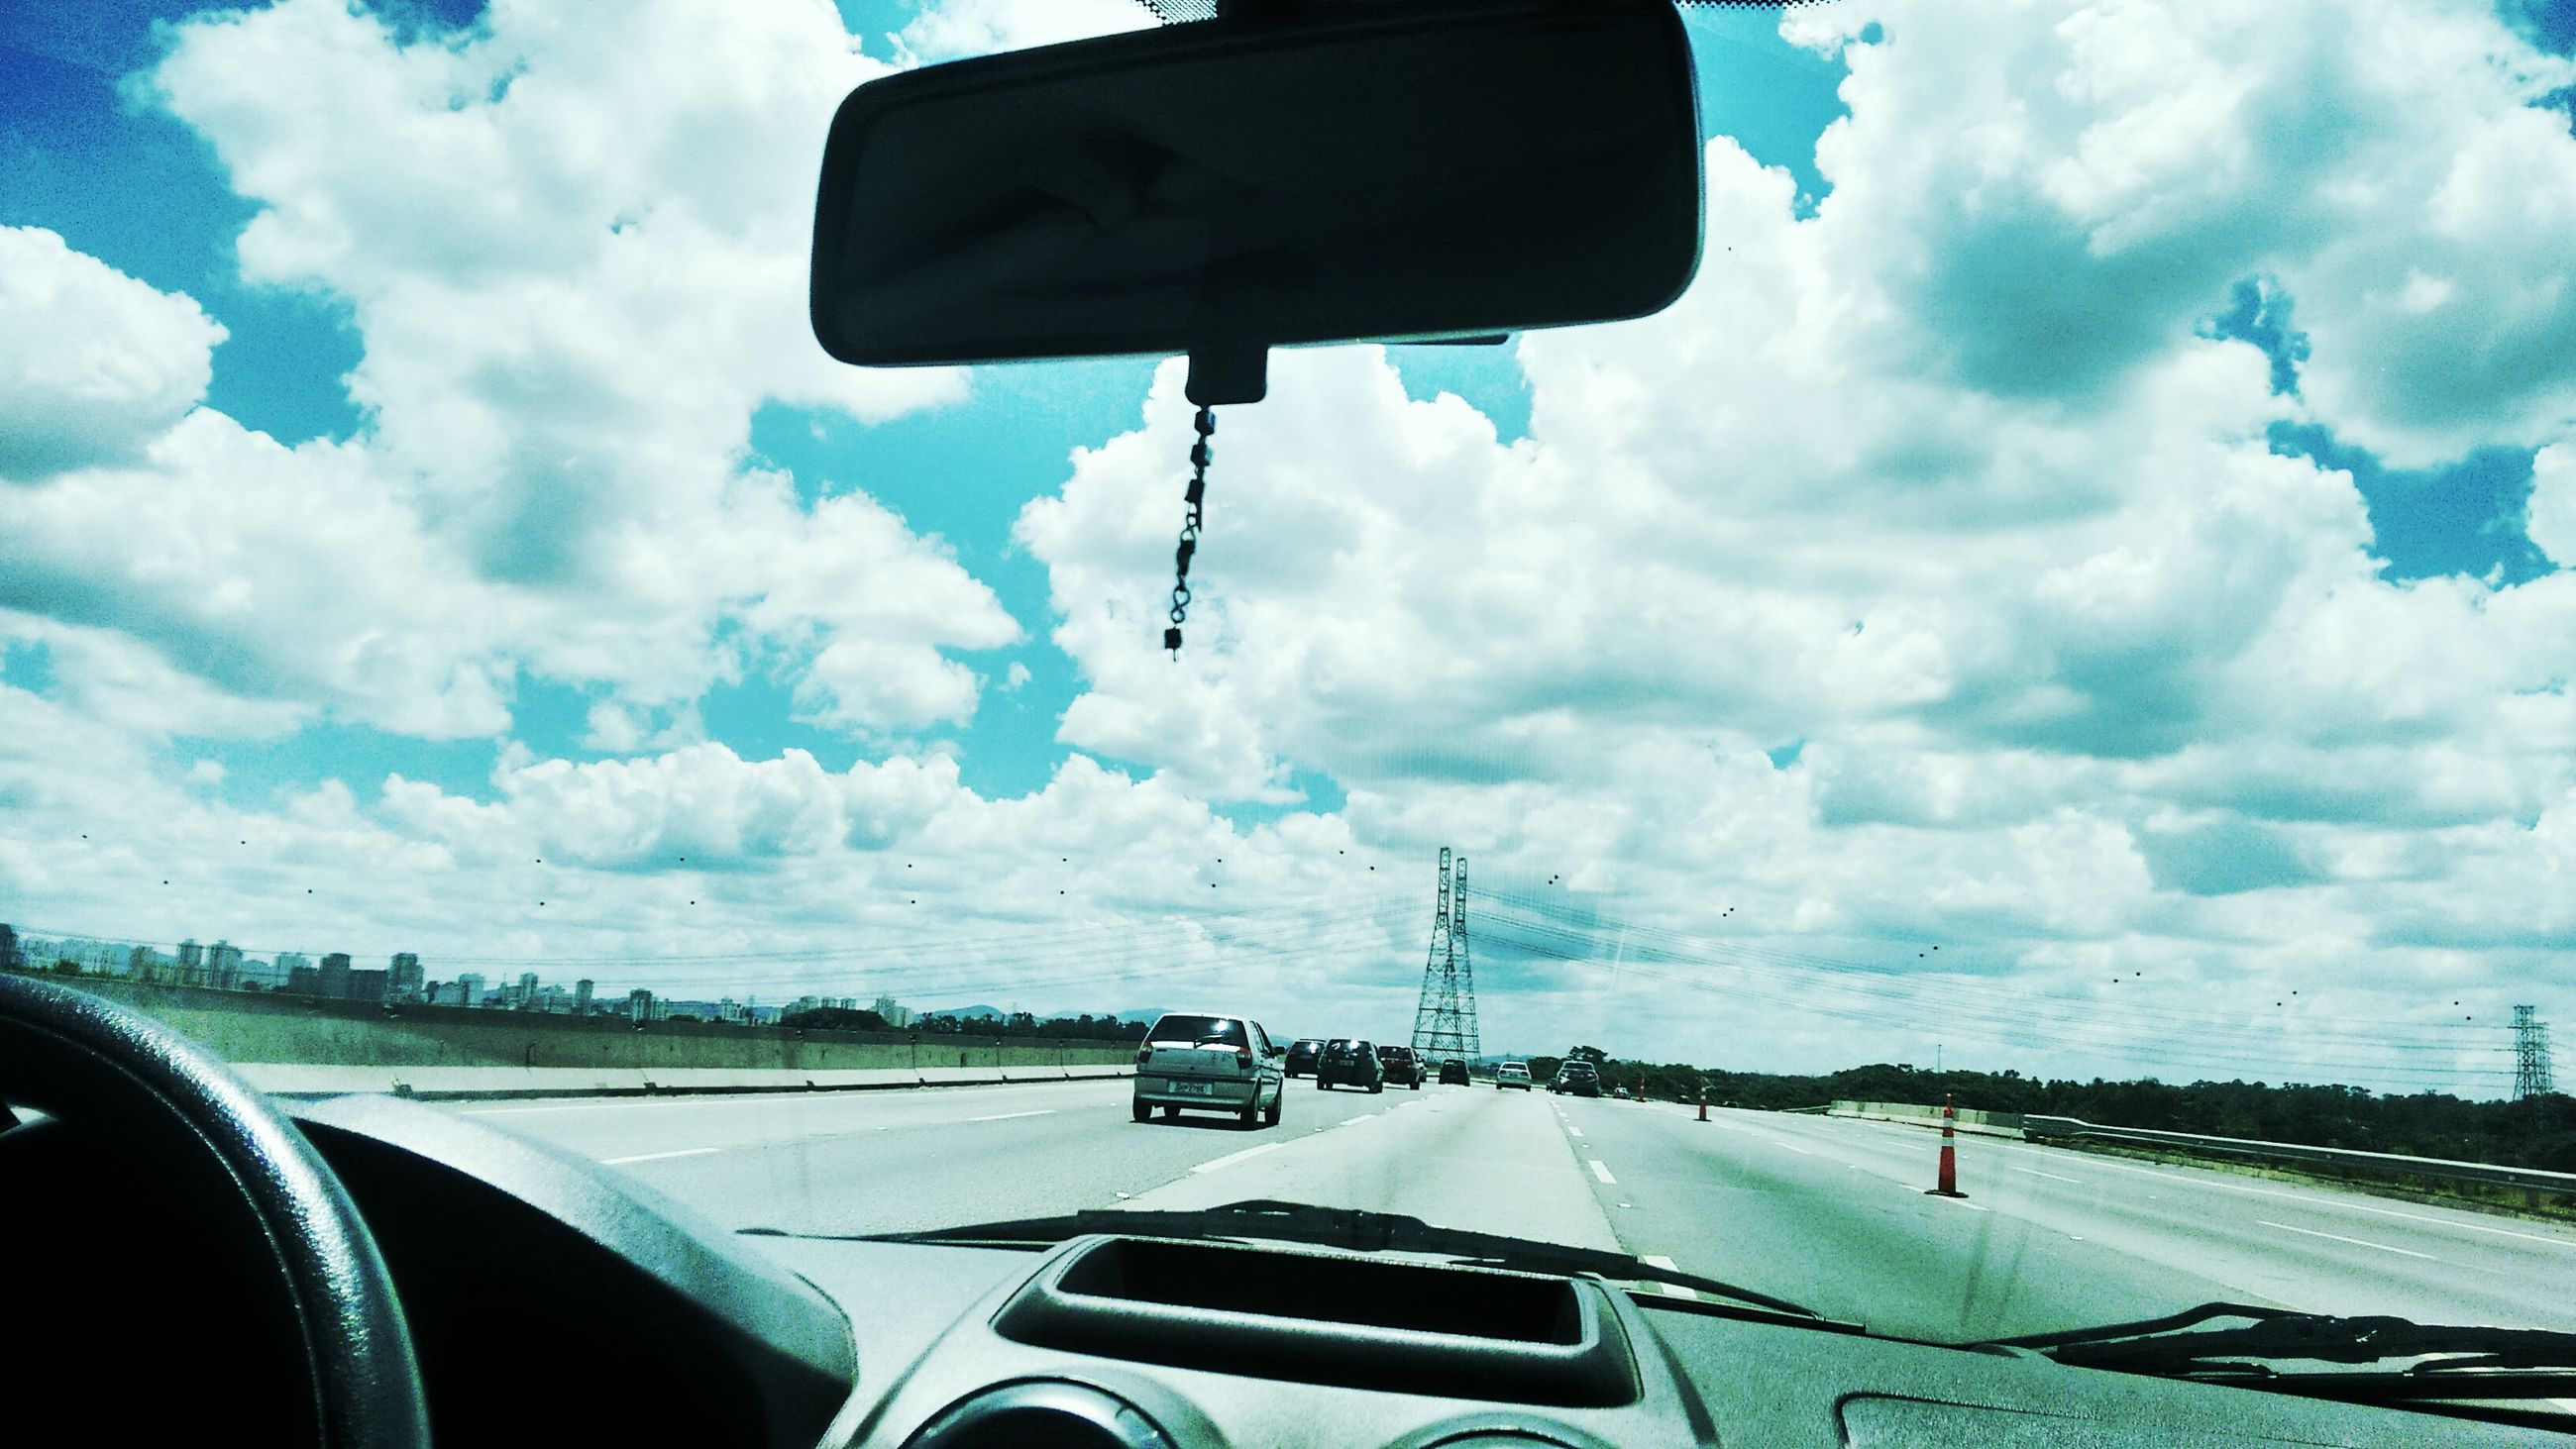 transportation, mode of transport, car, sky, vehicle interior, land vehicle, cloud - sky, airplane, travel, air vehicle, windshield, cloud, journey, part of, road, glass - material, vehicle part, car interior, transparent, on the move